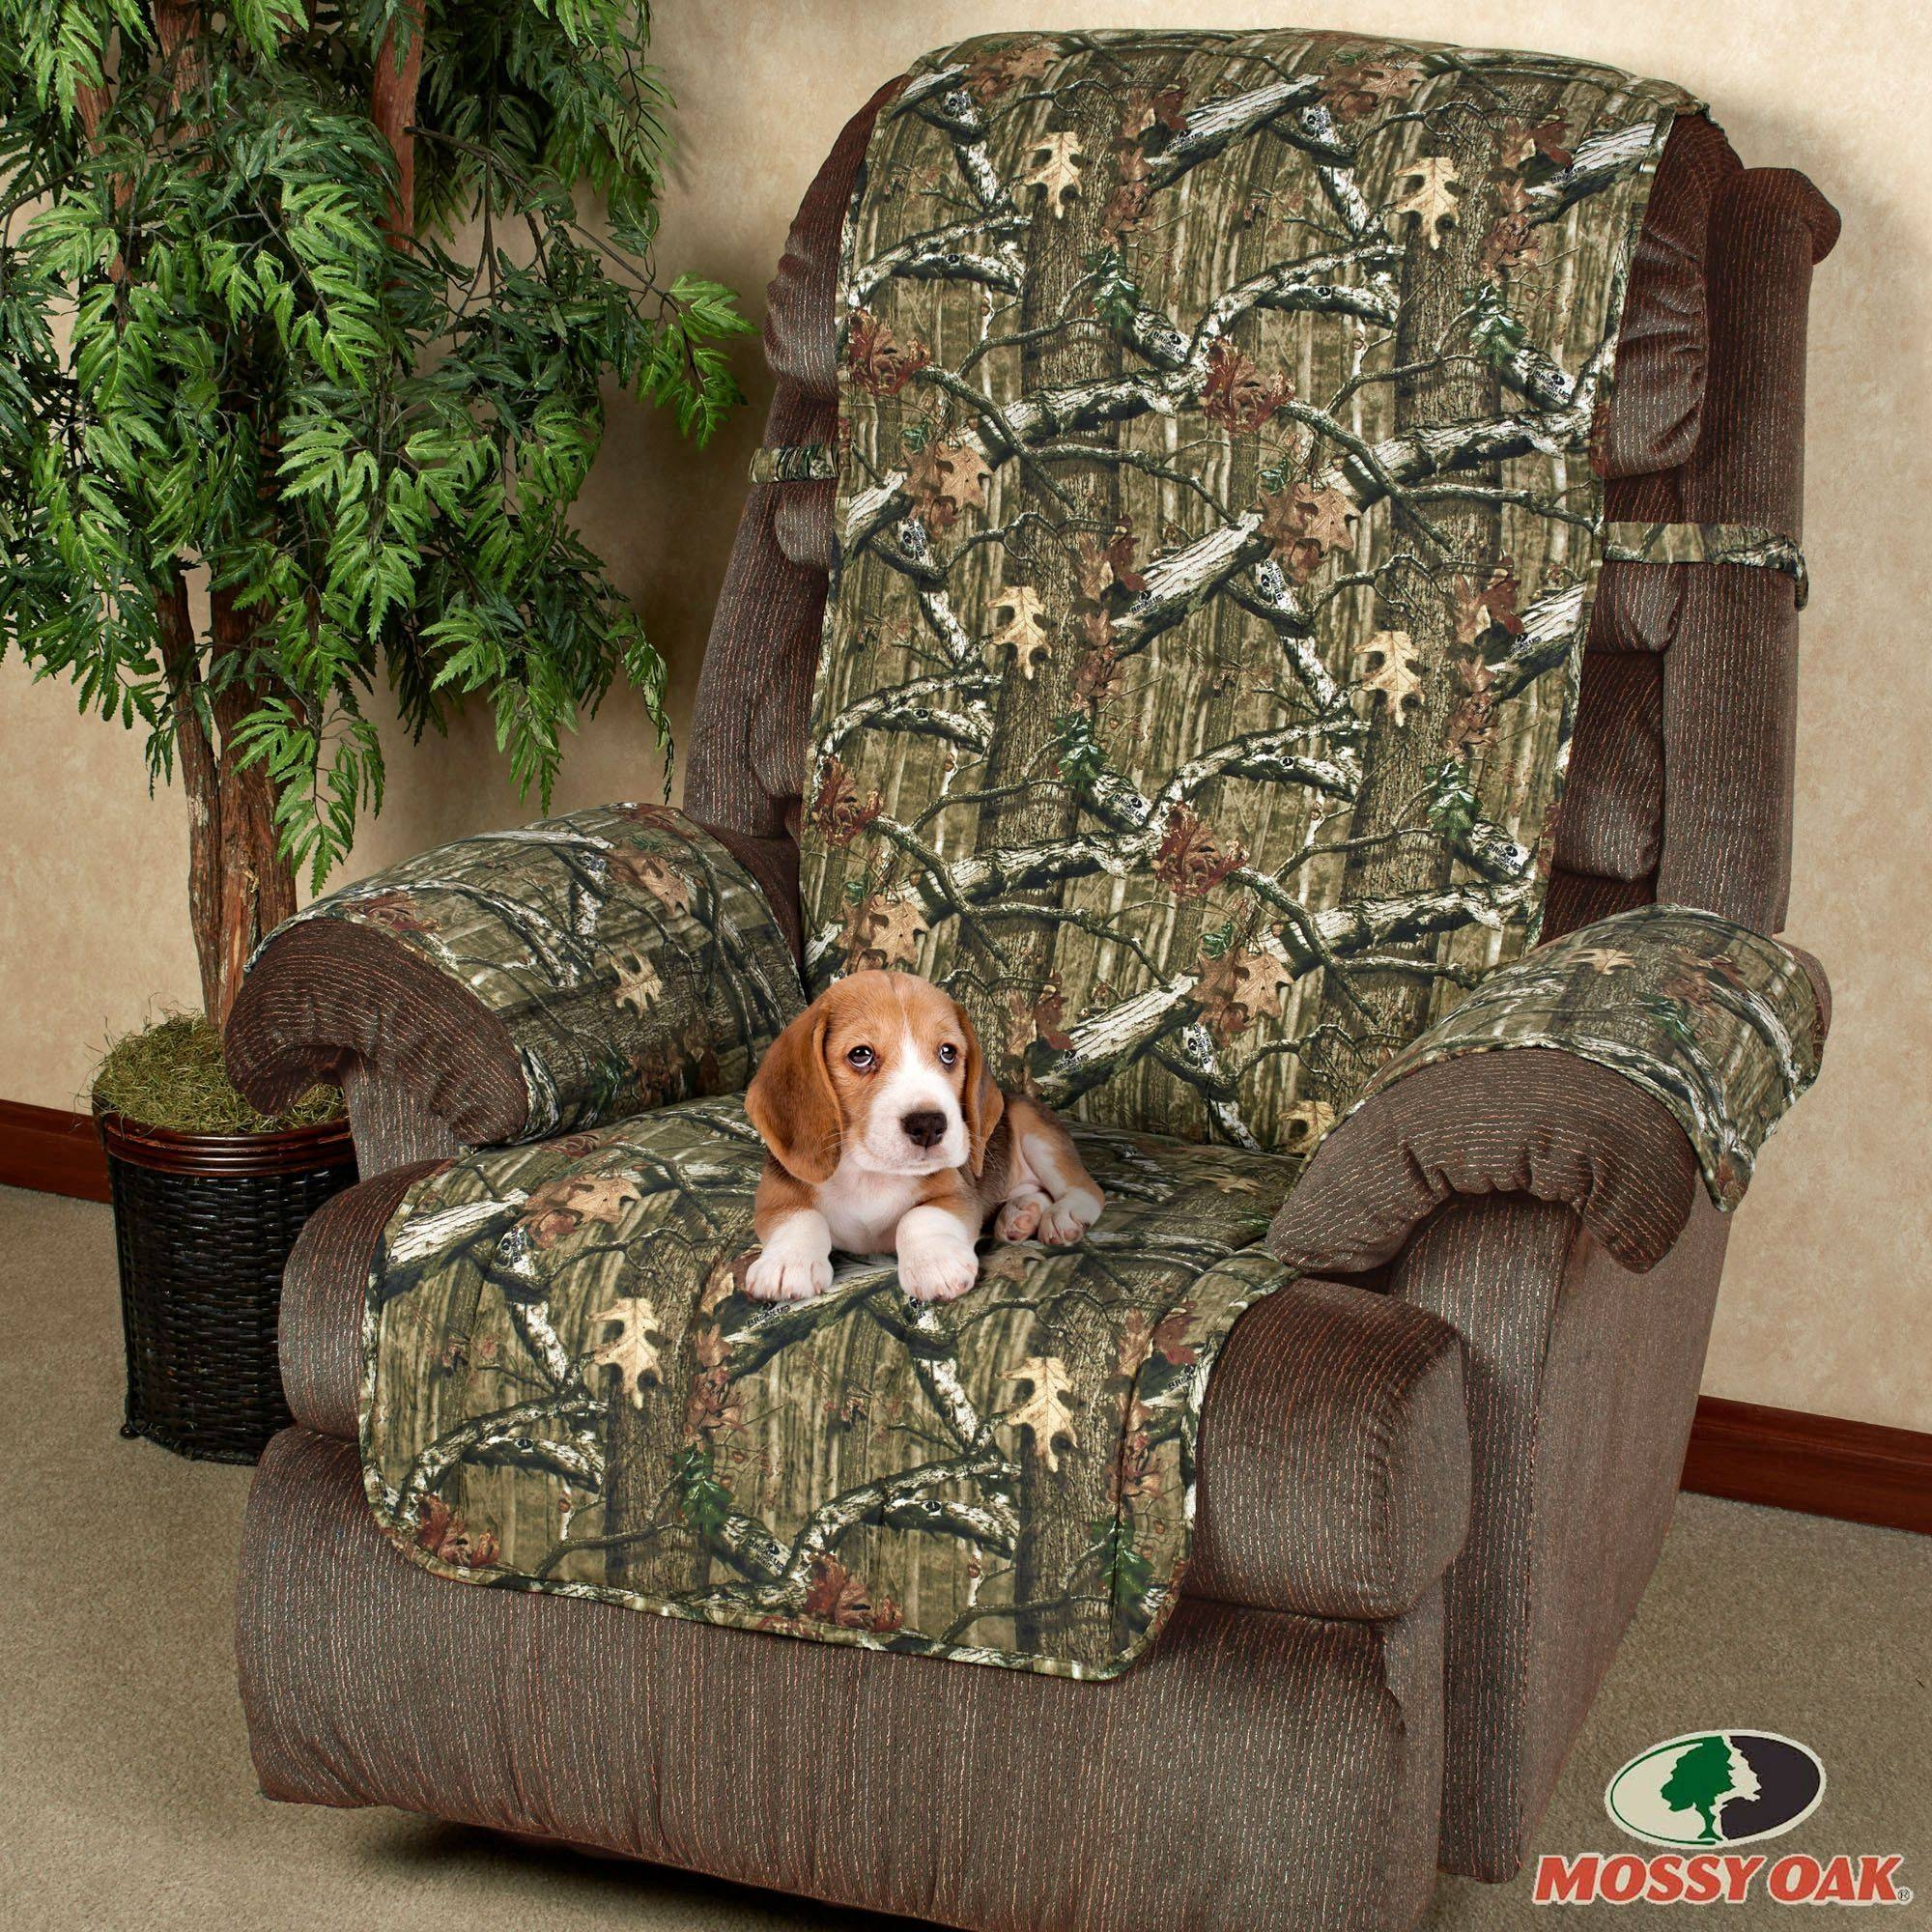 Mossy Oak Break Up Infinity Camo Furniture Protectors in Camo Sofa Cover (Image 13 of 30)